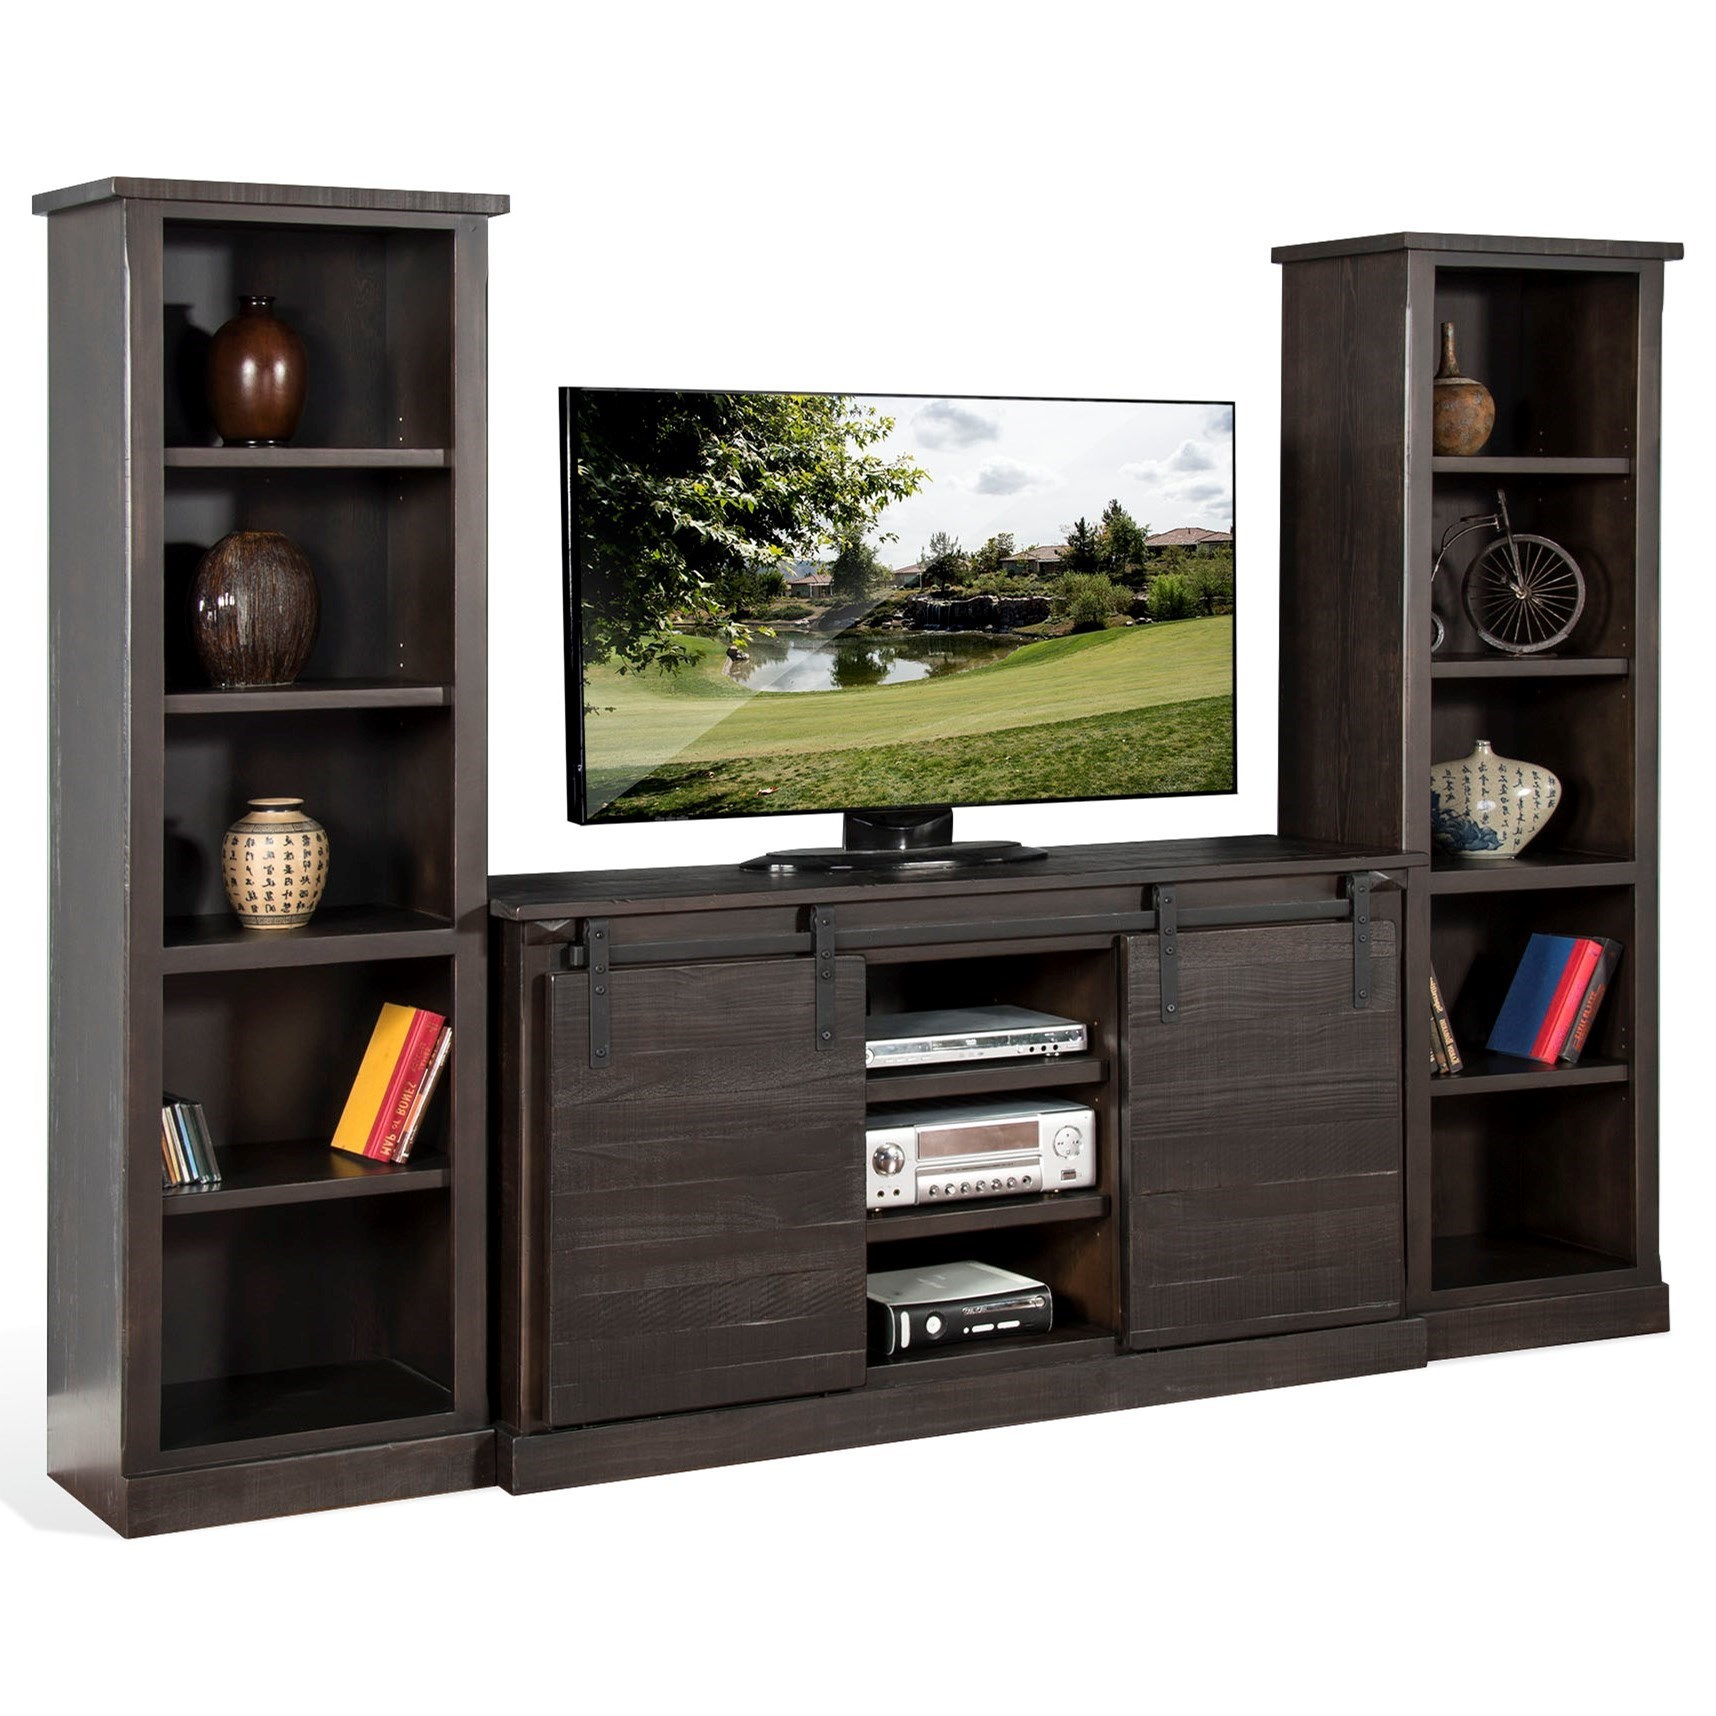 3577 Entertainment Wall Unit by Sunny Designs at Powell's Furniture and Mattress